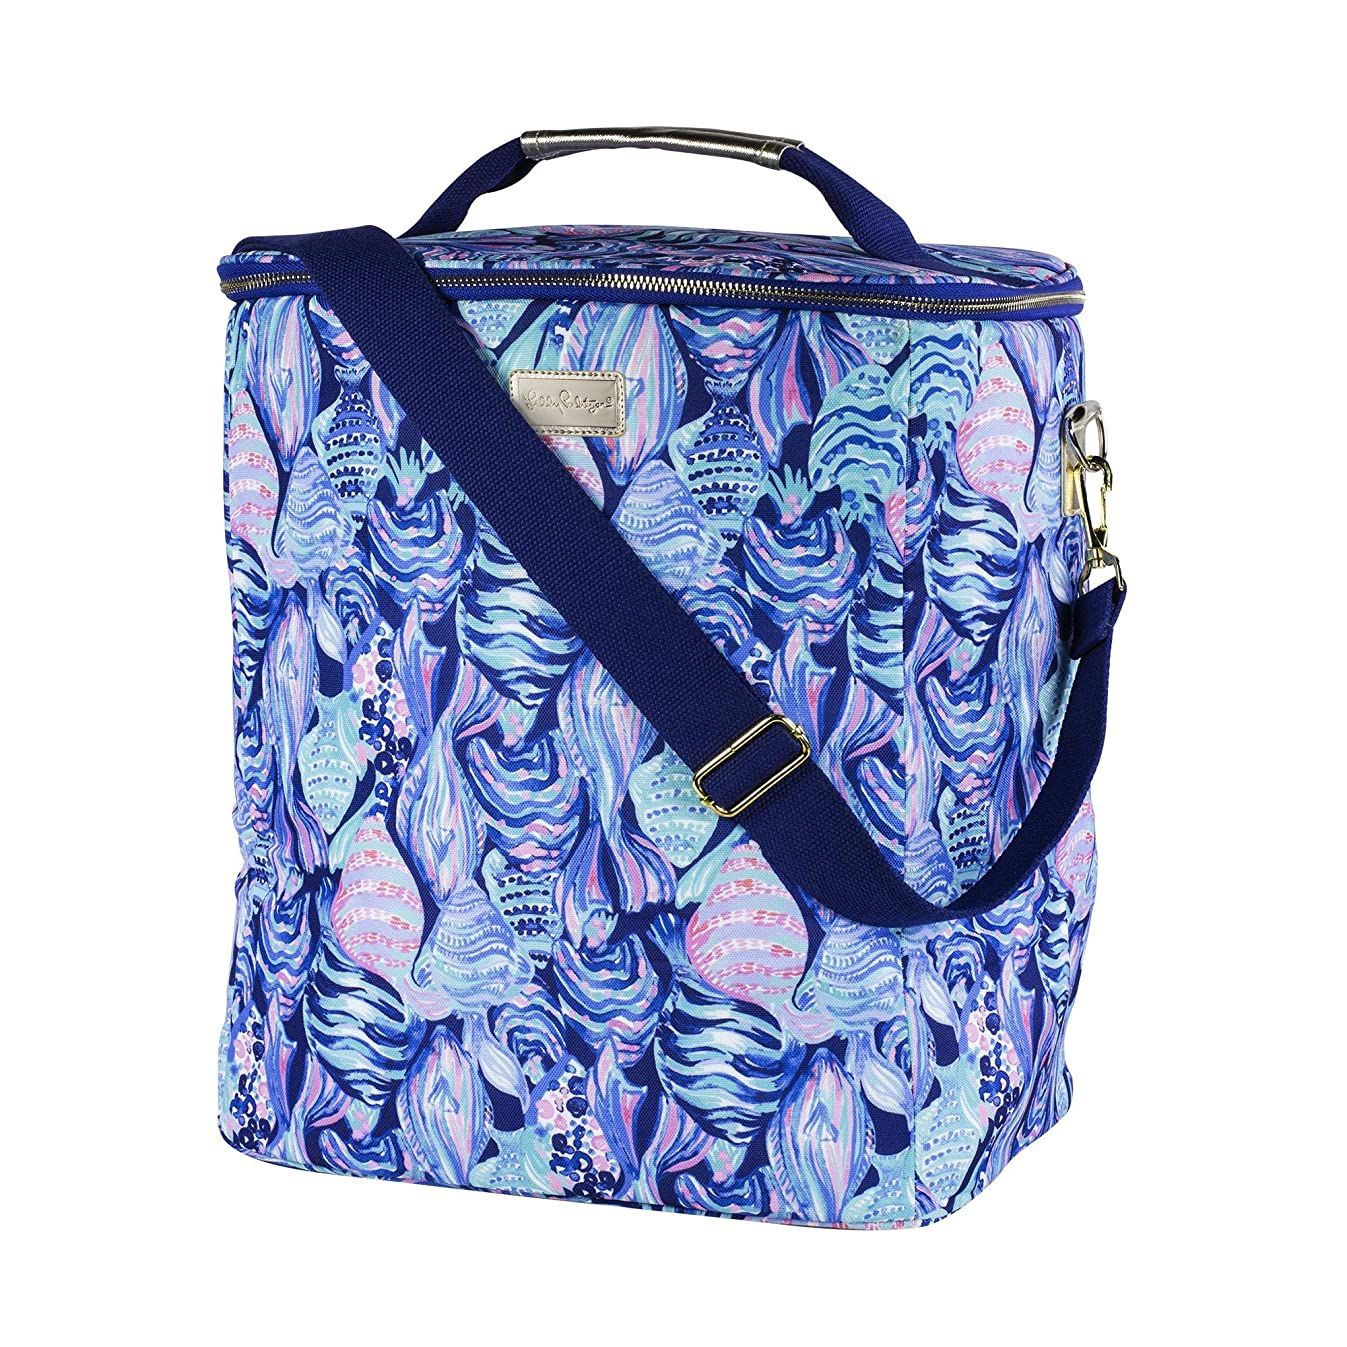 Lilly Pulitzer Insulated Wine Carrier Cooler with Zip Close, Top Handle, and Adjustable Strap (Scale Up)